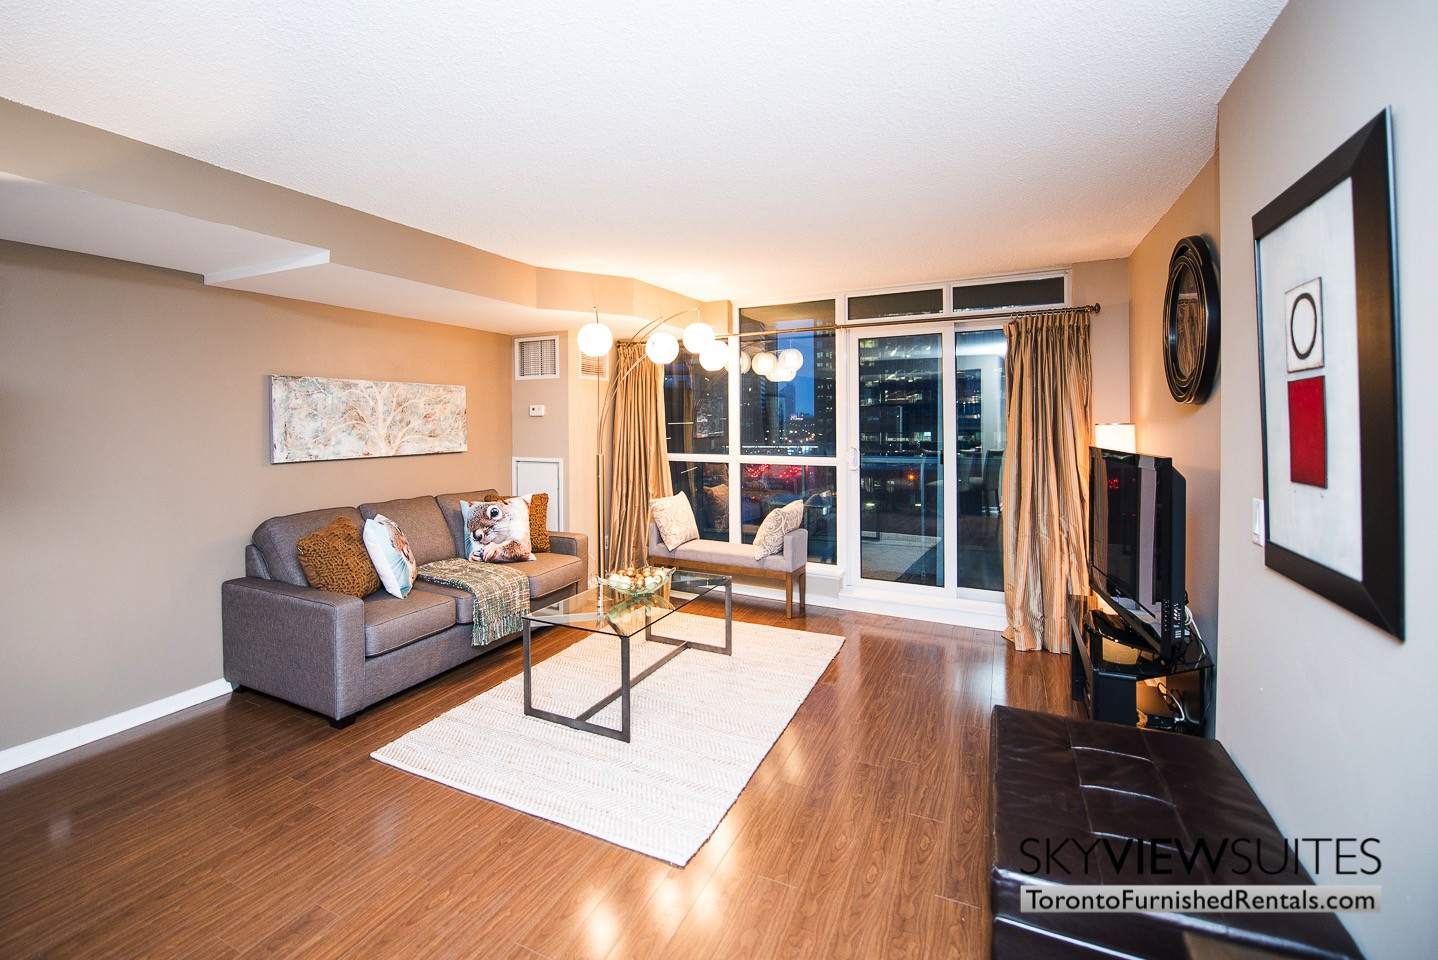 discount hardwood flooring toronto of waterclub b two bedroom furnished apartment in furnished apartment living room waterfront